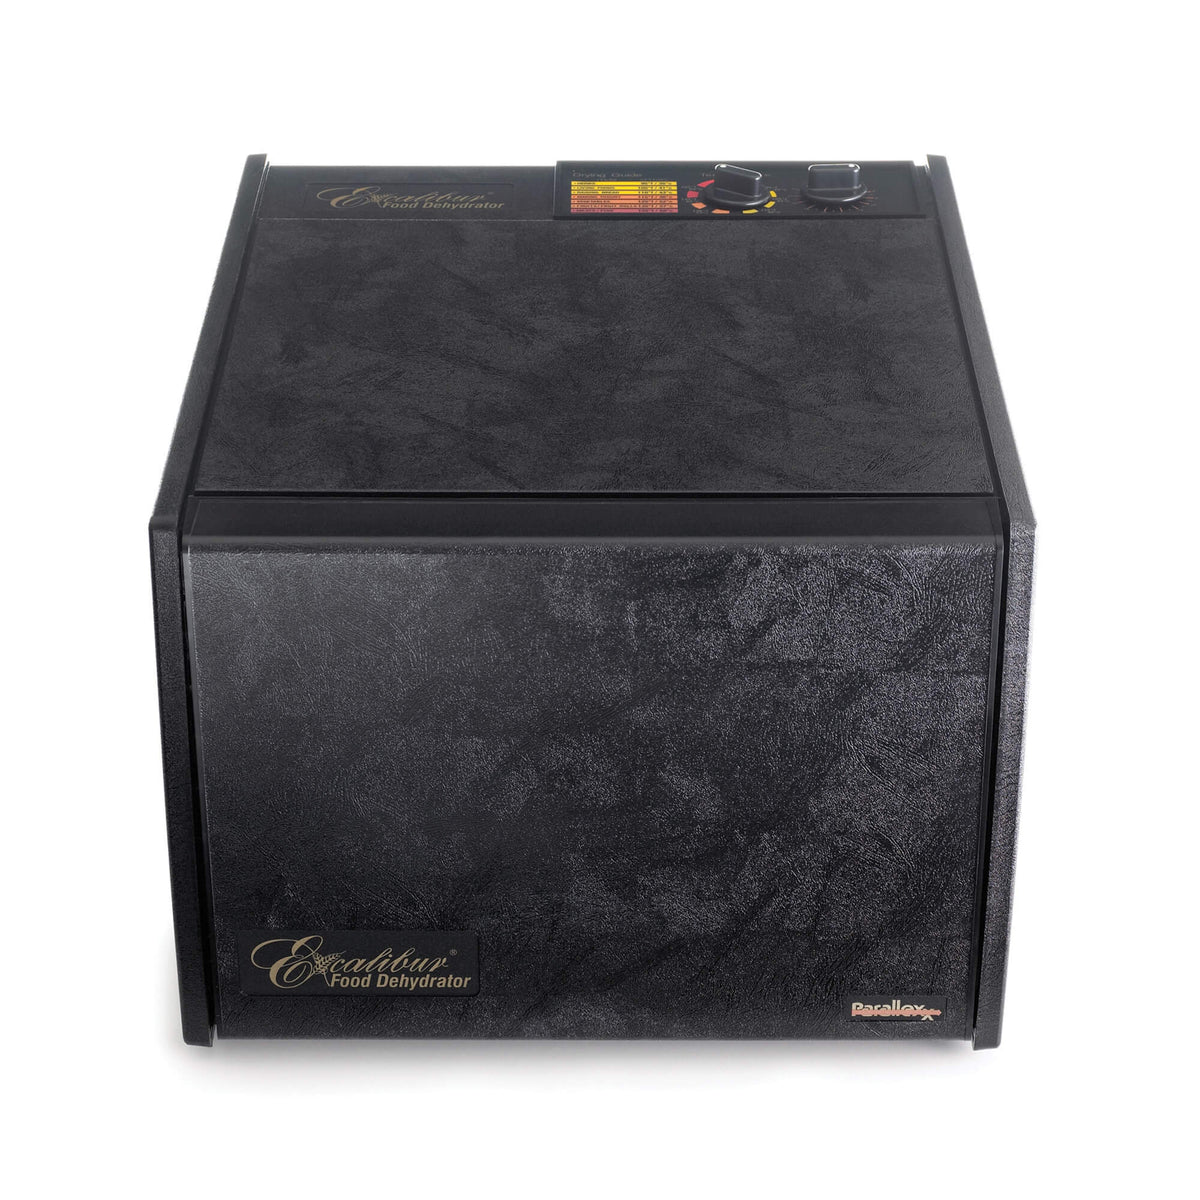 Excalibur 4926TB black 9 tray dehydrator front view with door closed.